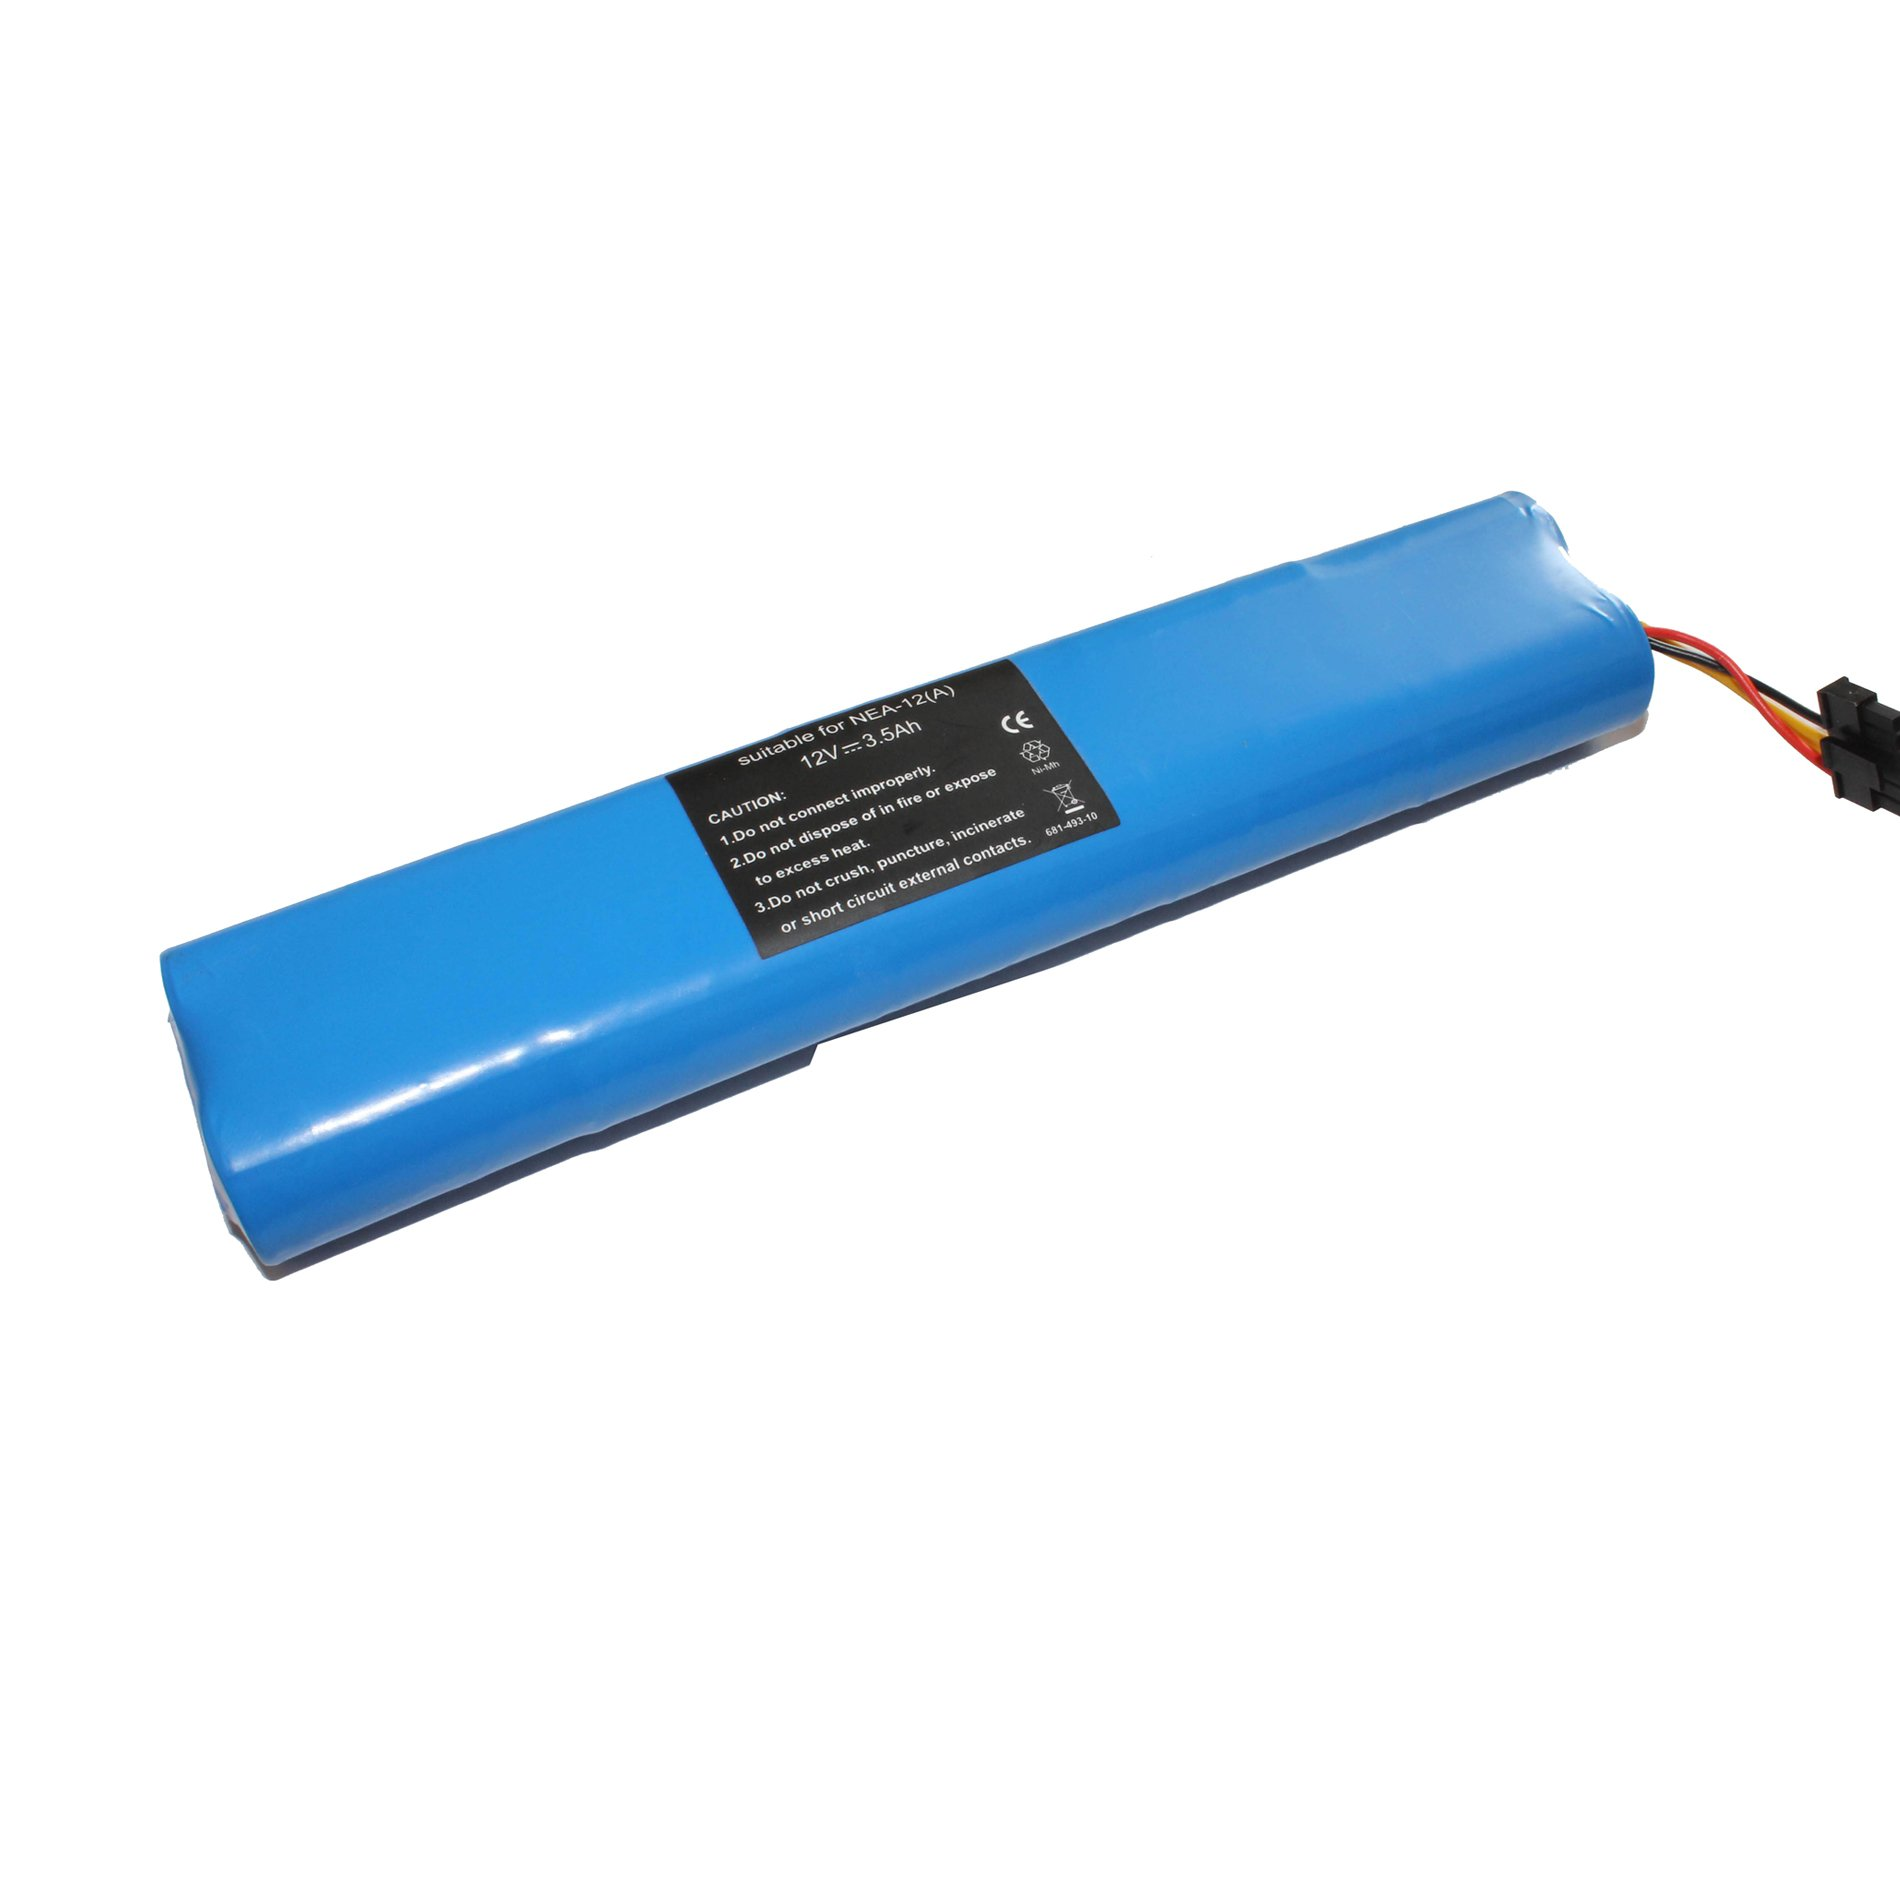 IDS Home 12V 3500mAh Vacuum Cleaner Replacement Battery for Neato Botvac 70e 75 80 85 Series